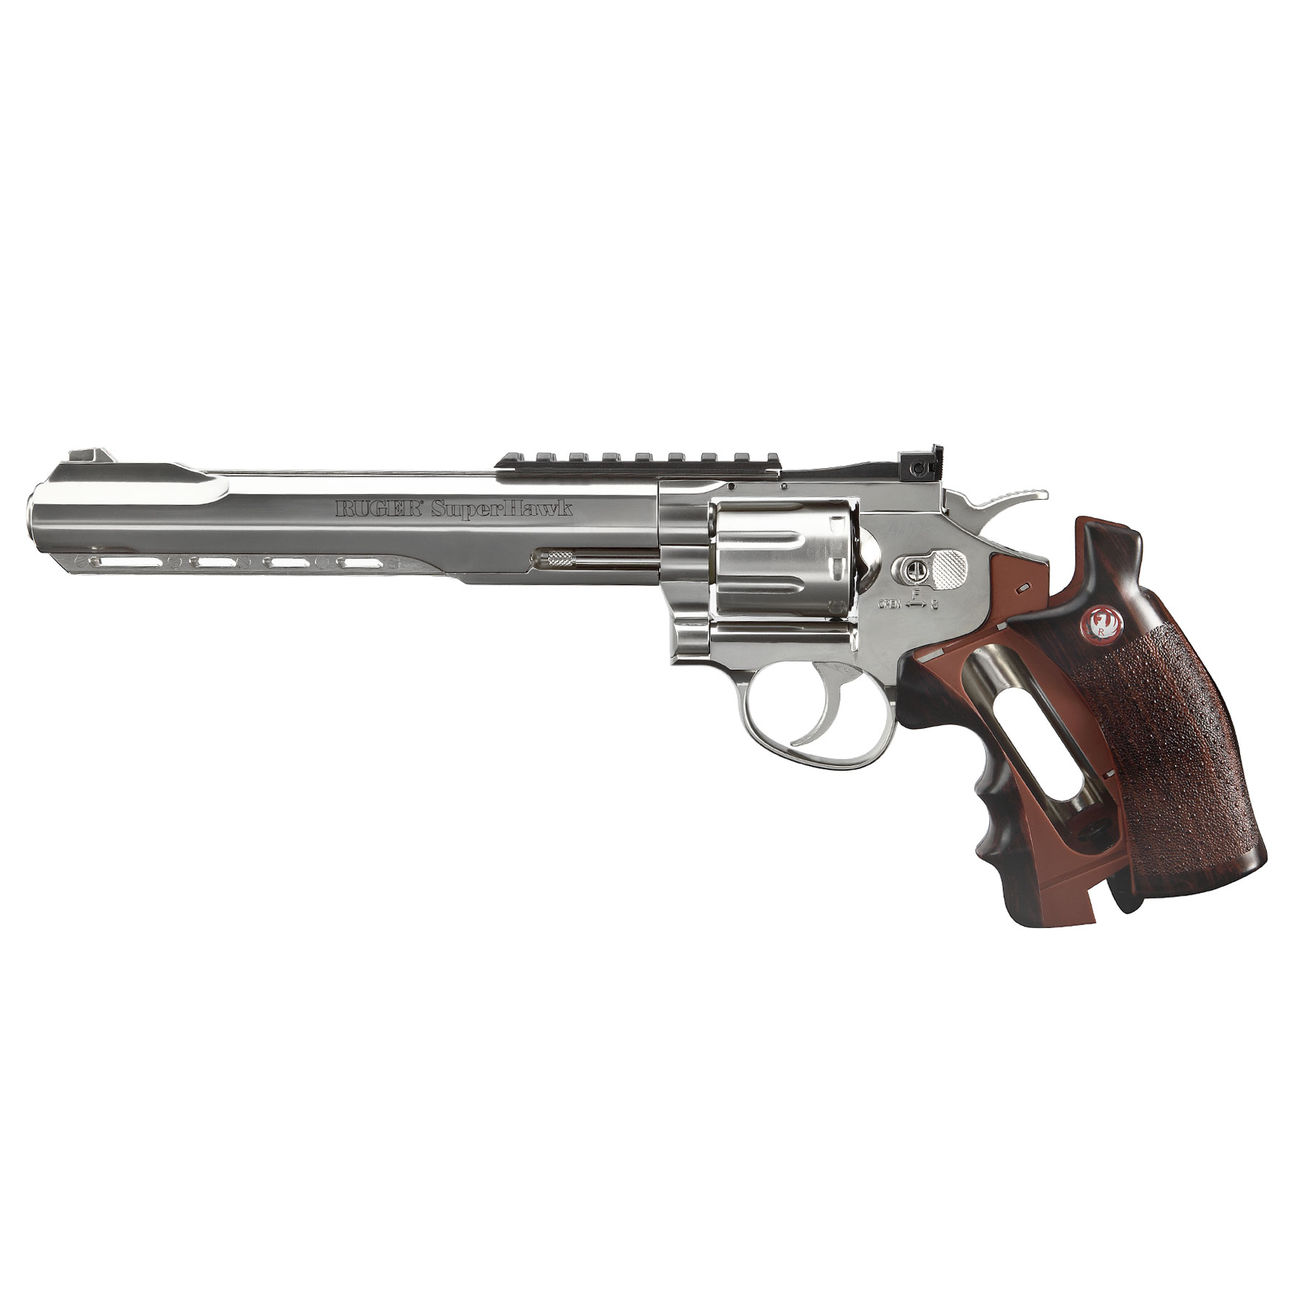 Ruger Super Hawk 8 Zoll 6mm BB CO2 Revolver chrom 4